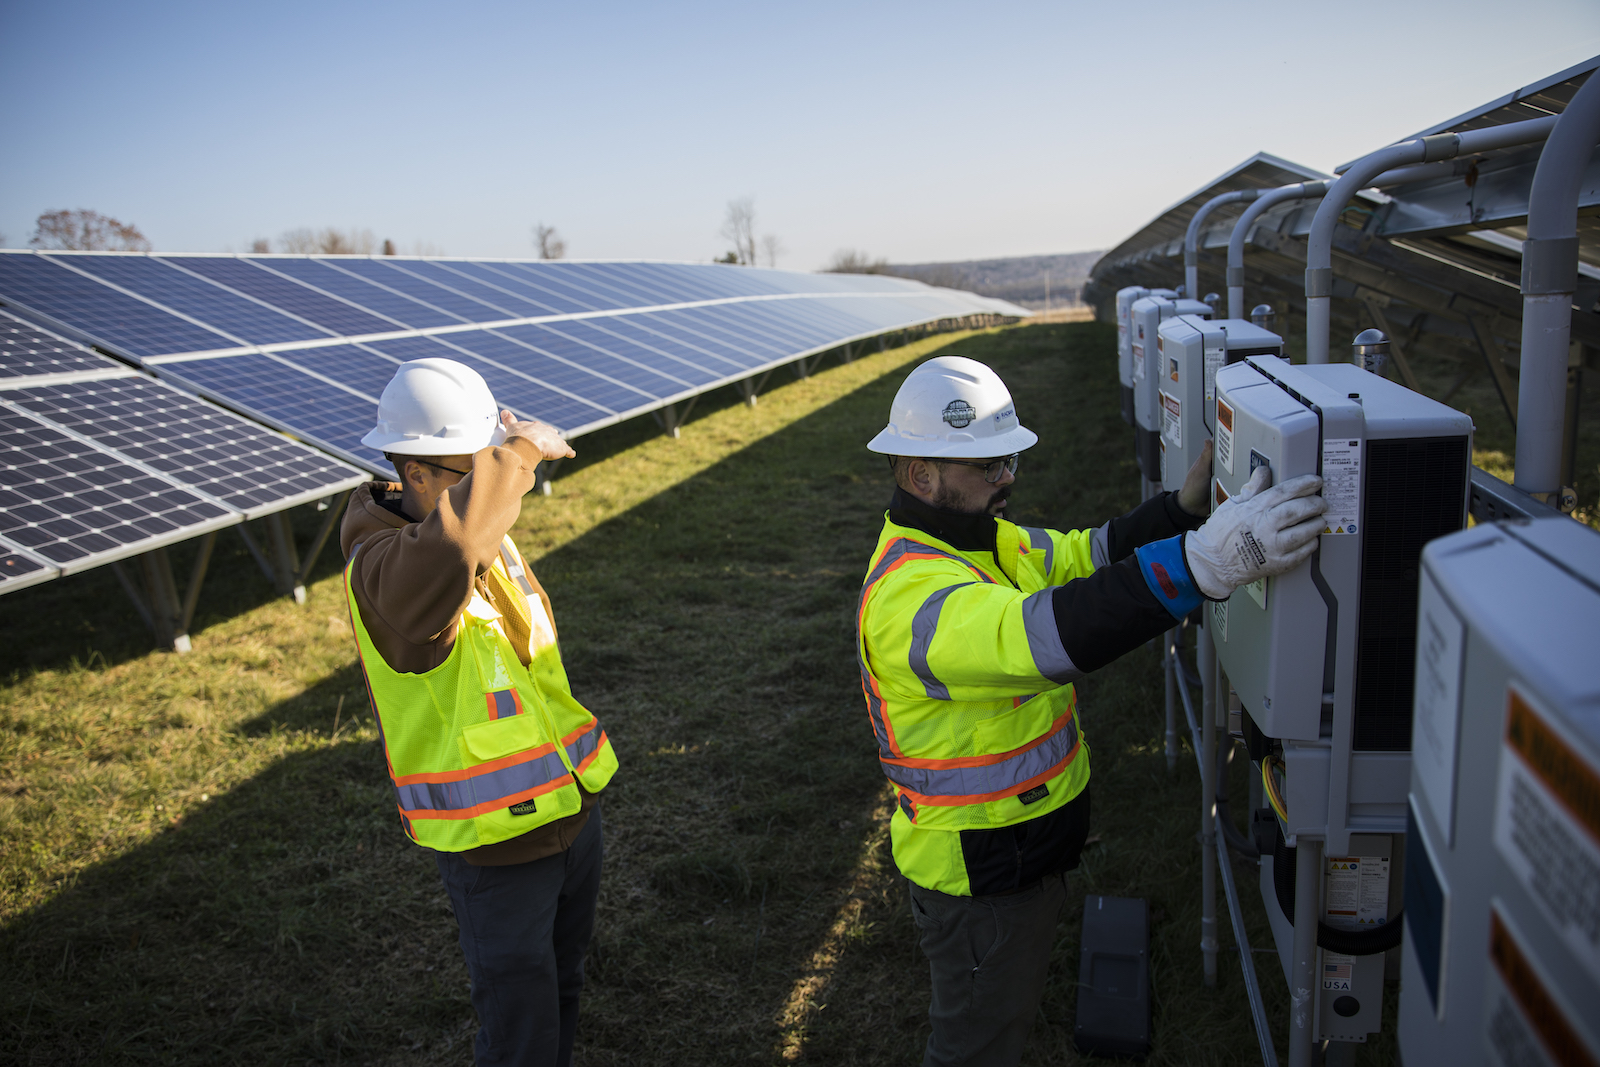 Employees from a Radian Generation's operations and maintenance team change out a faulty solar inverter along a row of solar panels December 4, 2017 in Oxford, Massachusetts. The 16.5 megawatt solar array, on what was once the largest pig farm in the northeast, is owned and operated by BlueWave Solar which feeds the generated electricity to homes and small businesses and to the Fay School and Phillips Academy Andover private schools.